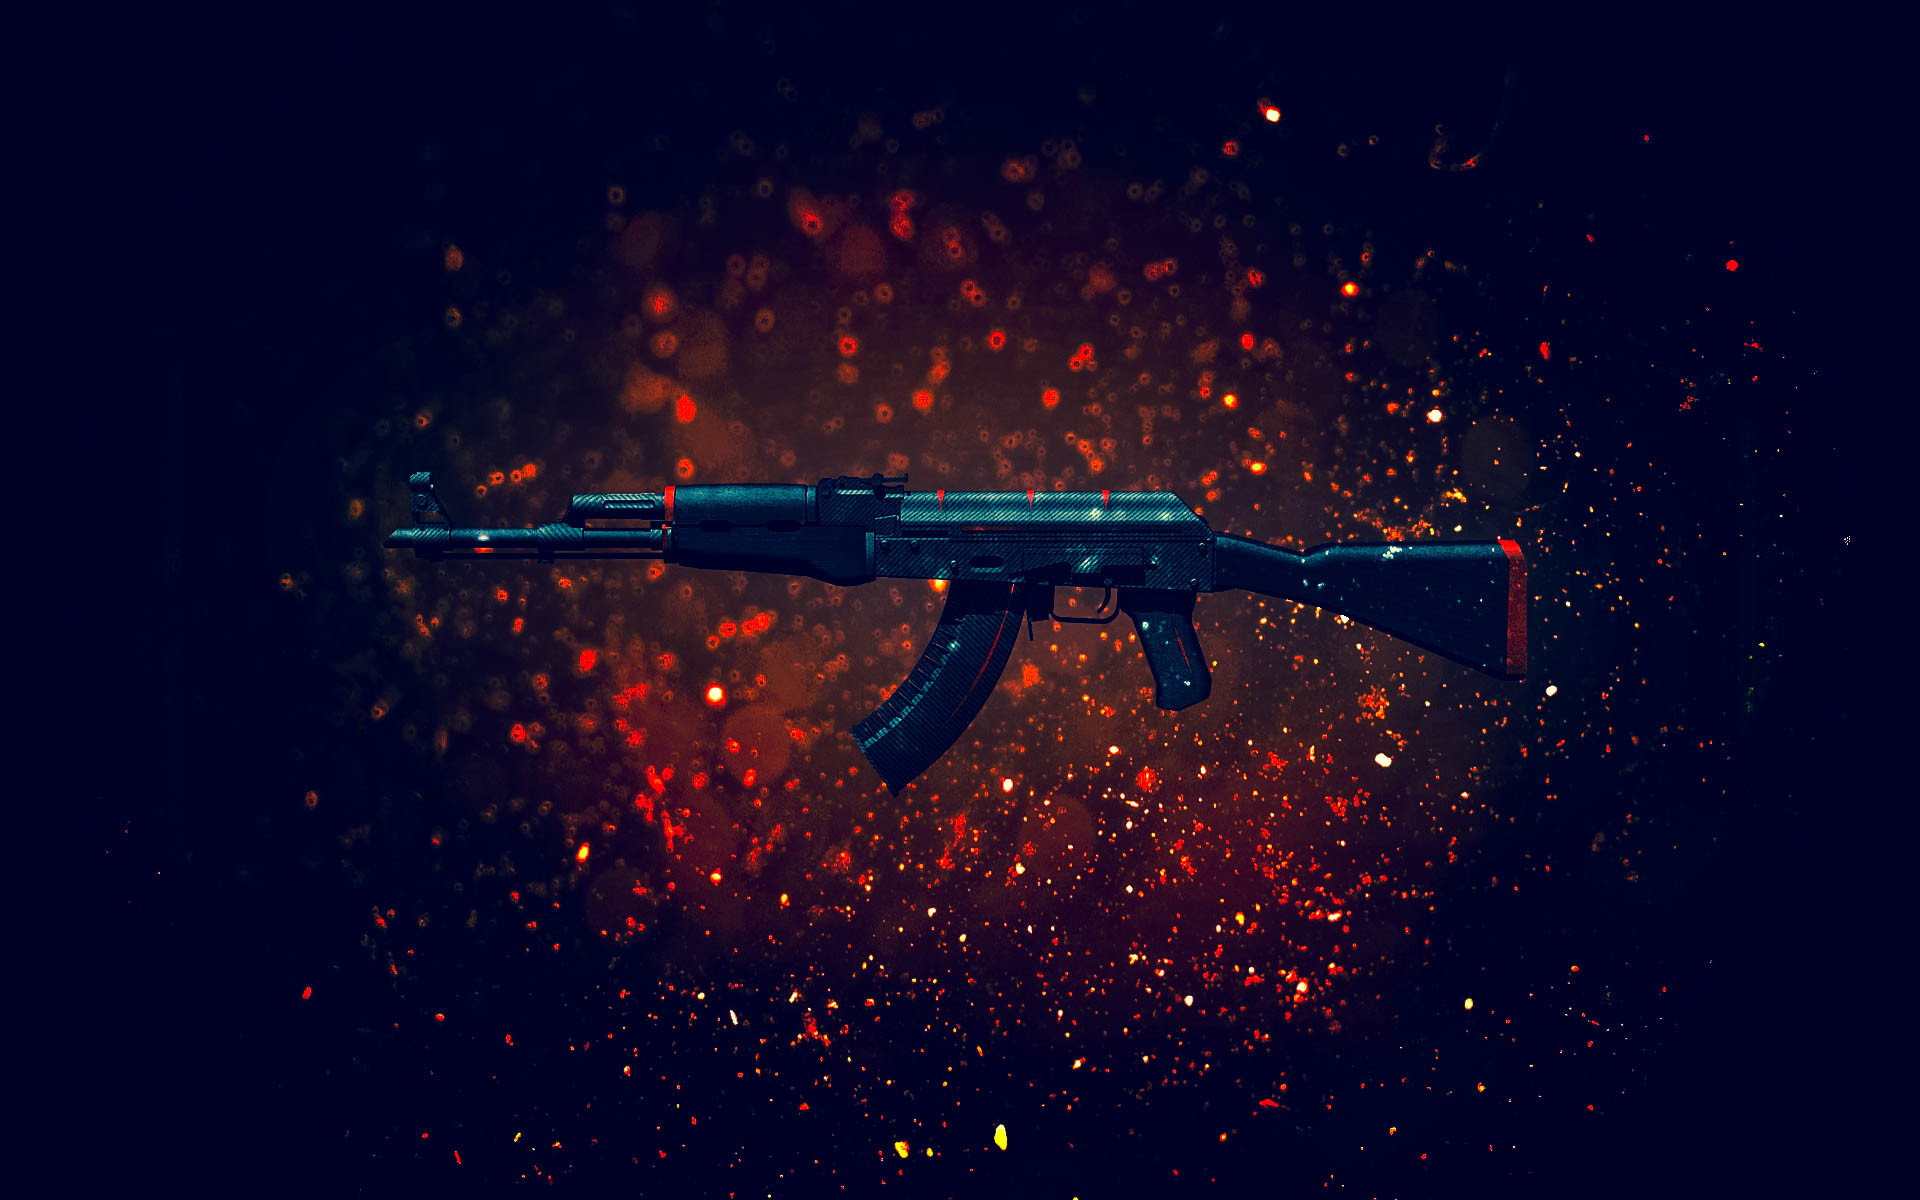 1920x1200 Awp Cs Go Wallpaper